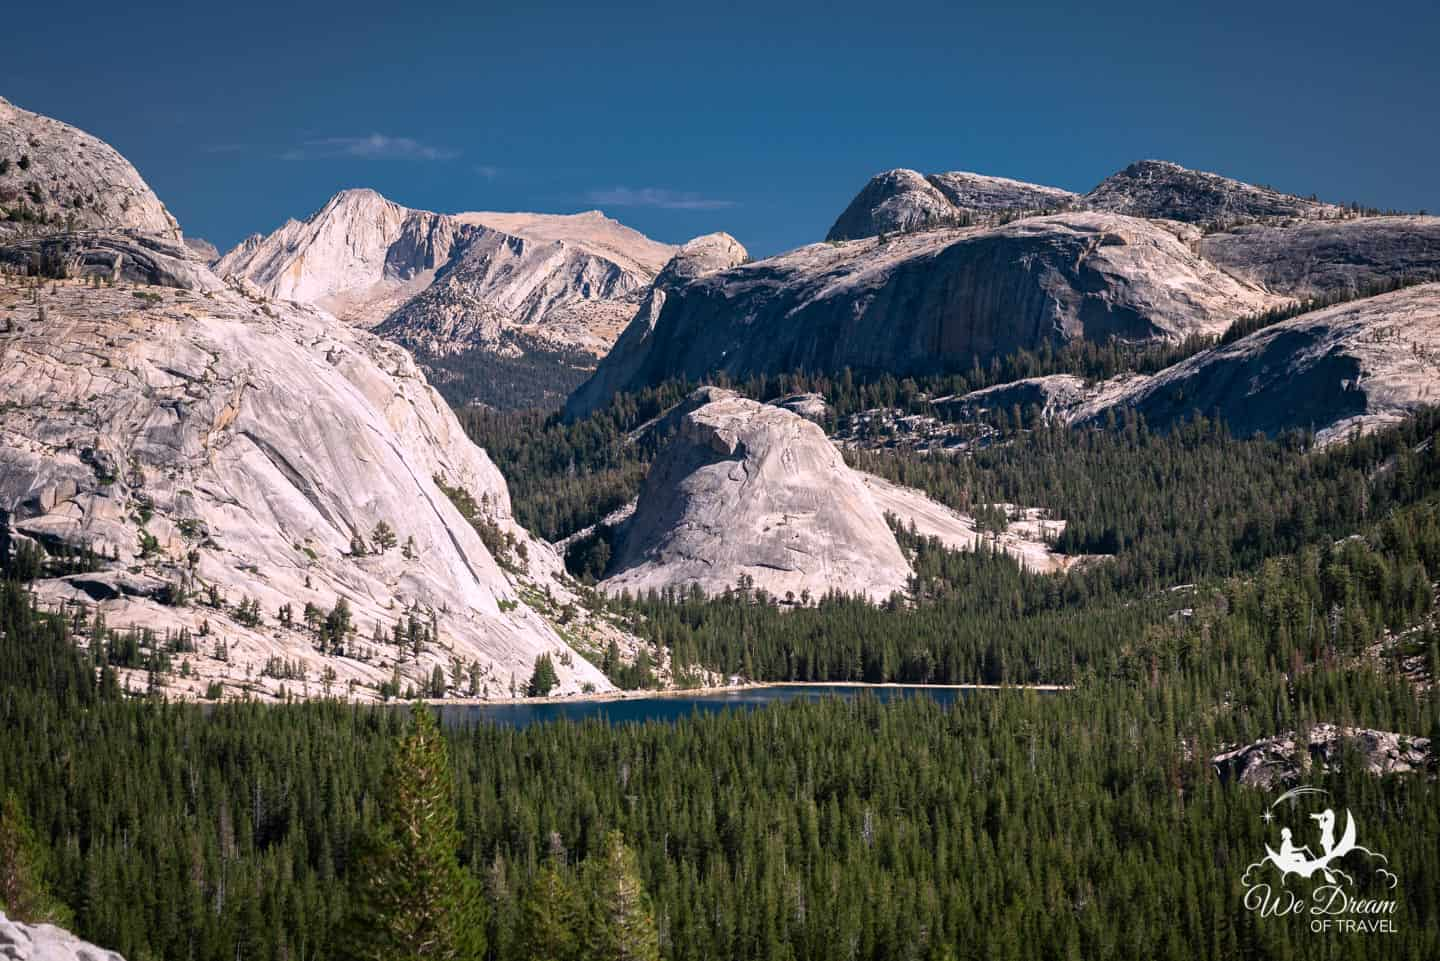 A summer visit to Yosemite National Park allows photography from Tioga Pass.